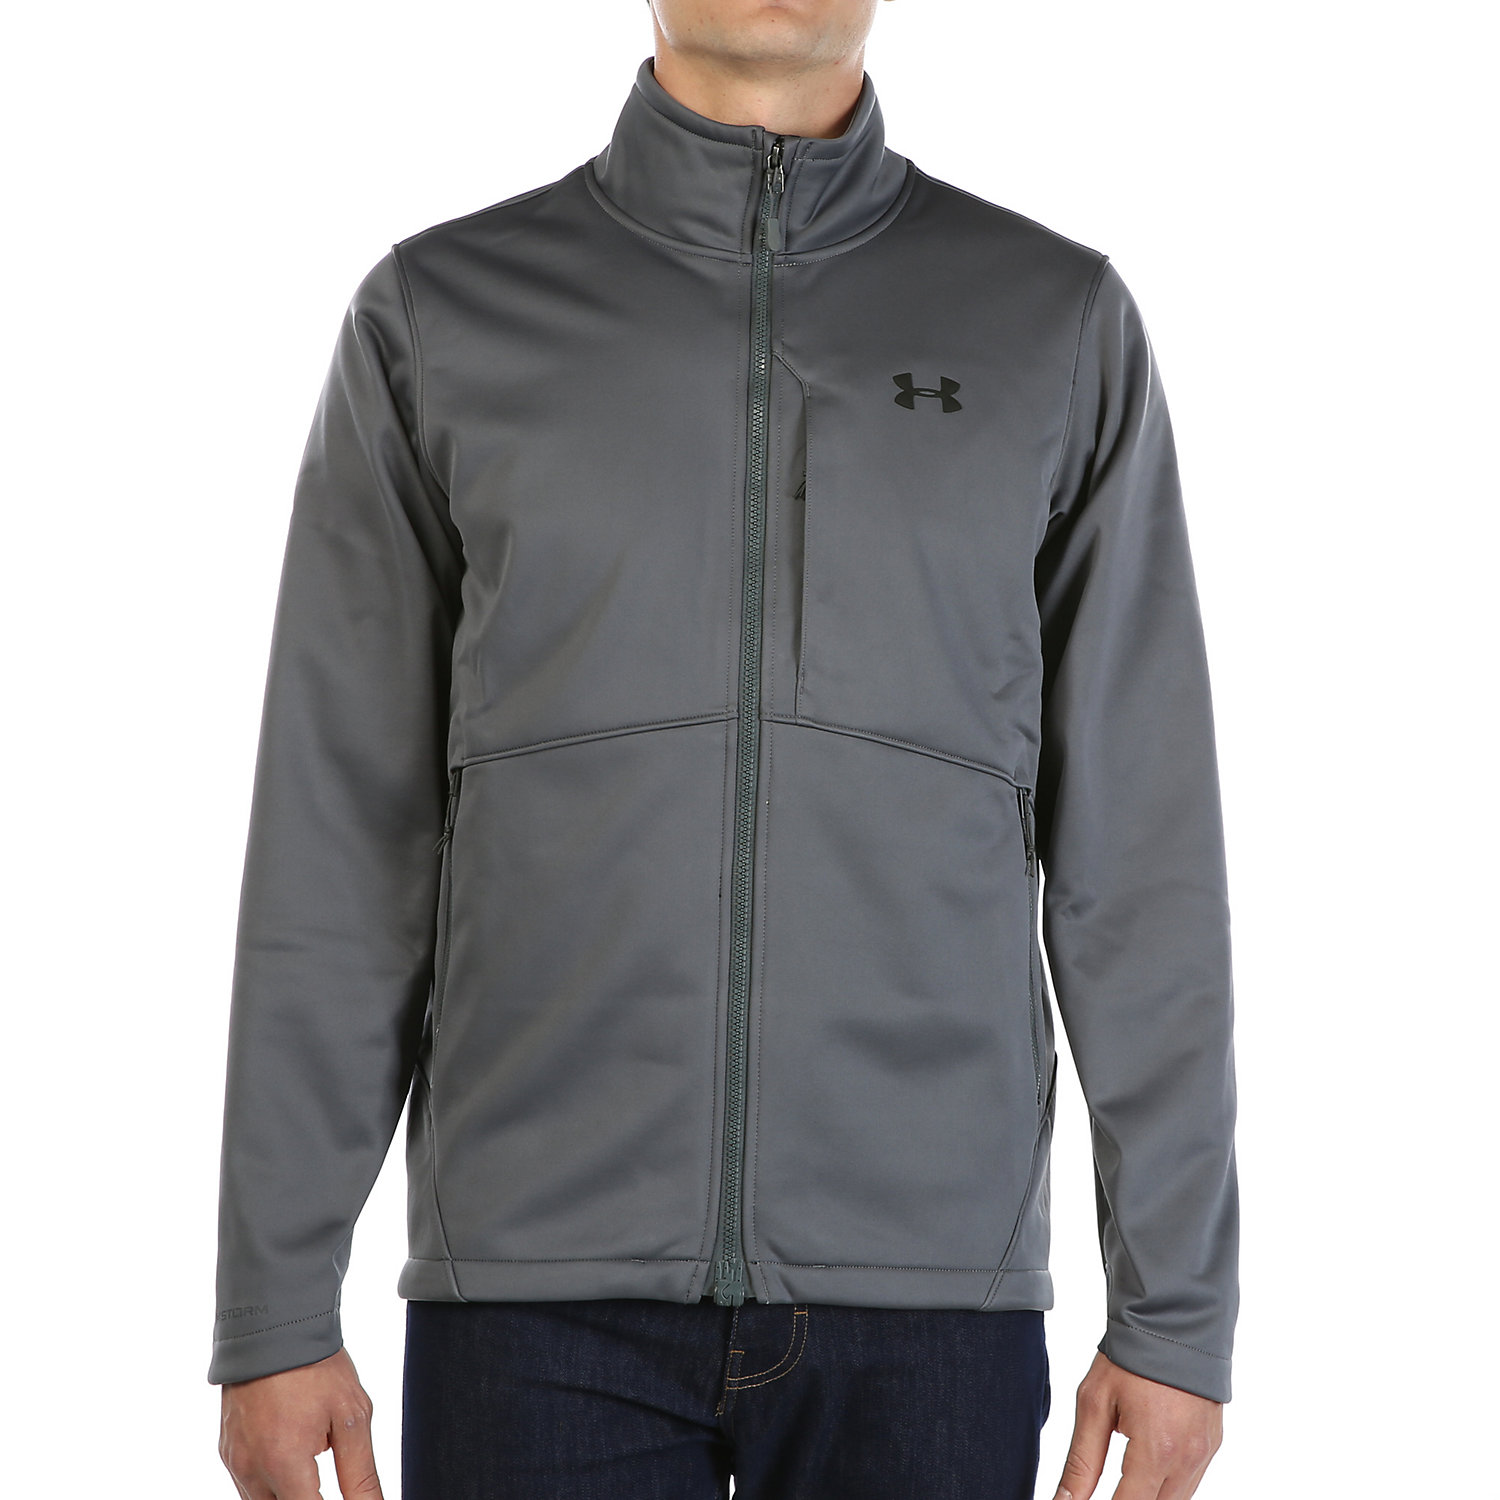 cheaper popular style lace up in Under Armour Men's ColdGear Infrared Softershell Jacket